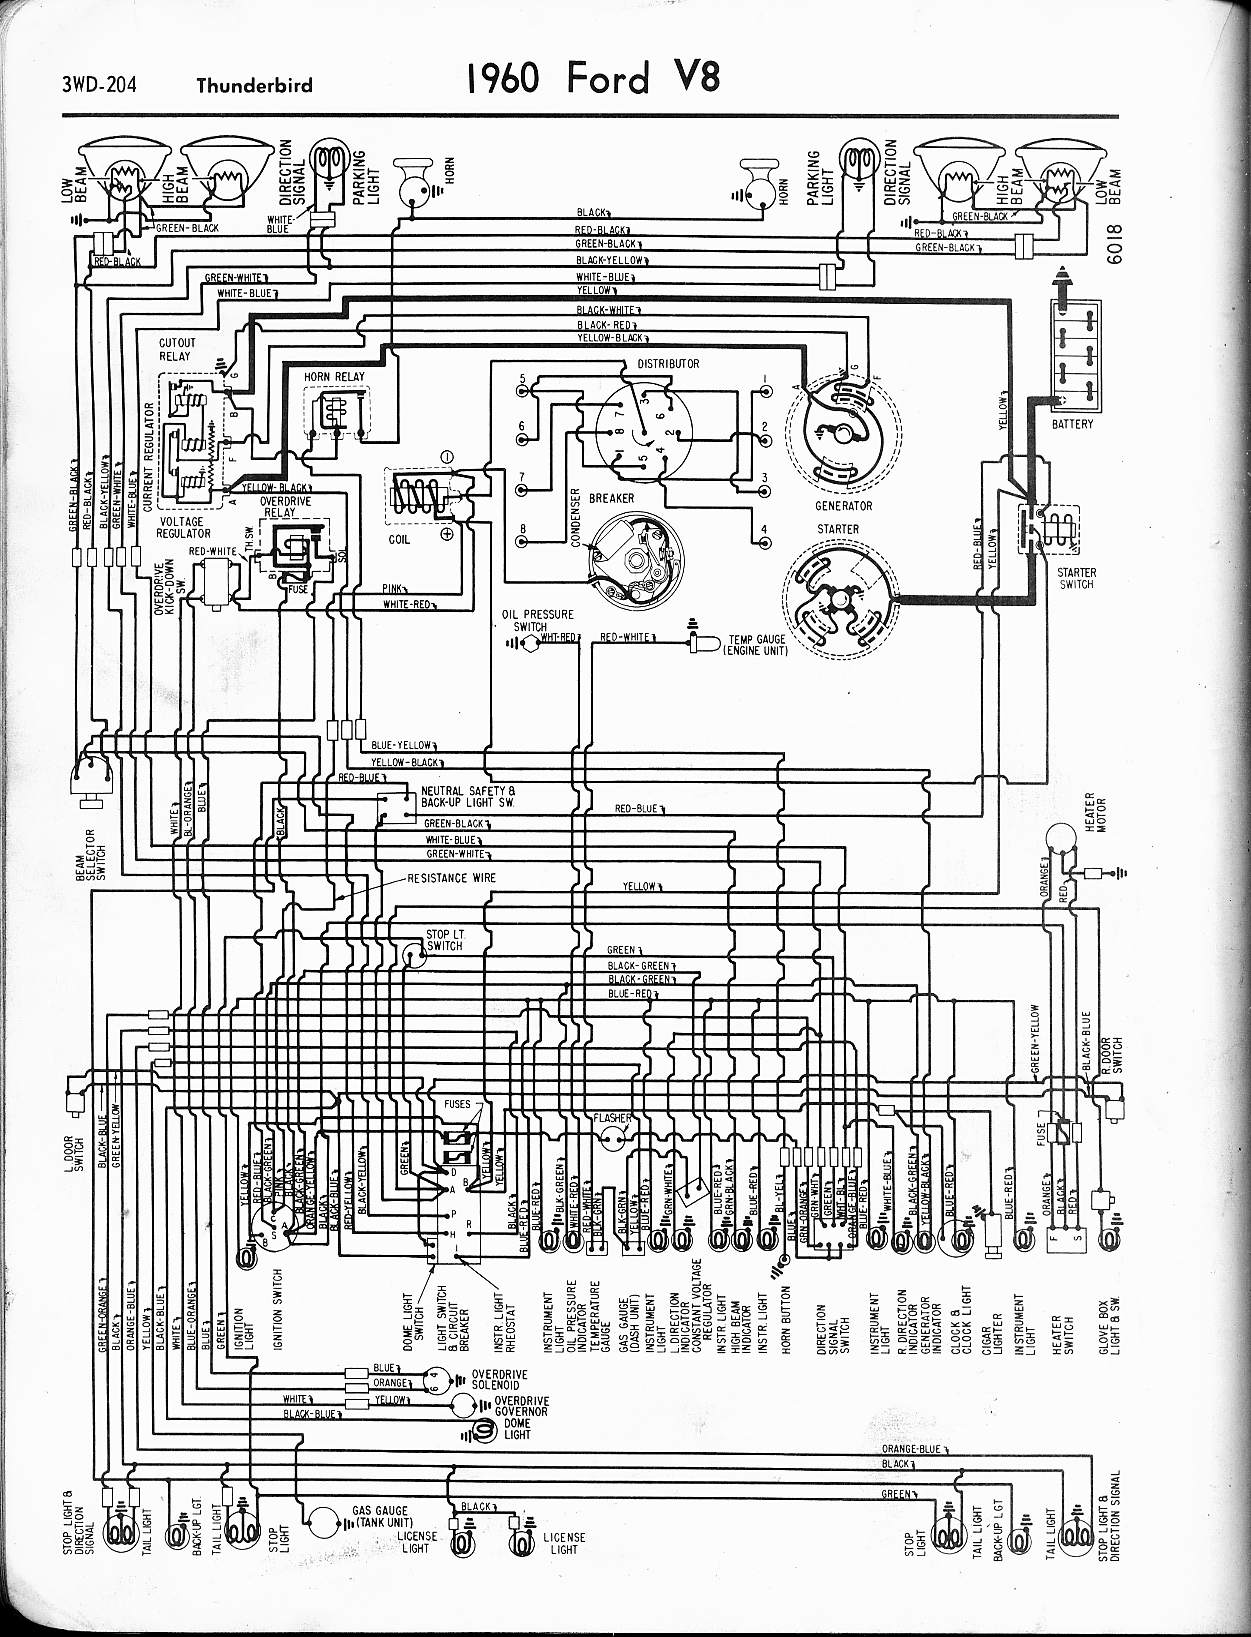 1964 Ford Thunderbird Fuel Wiring Diagram Libraries 57 65 Diagrams1964 21